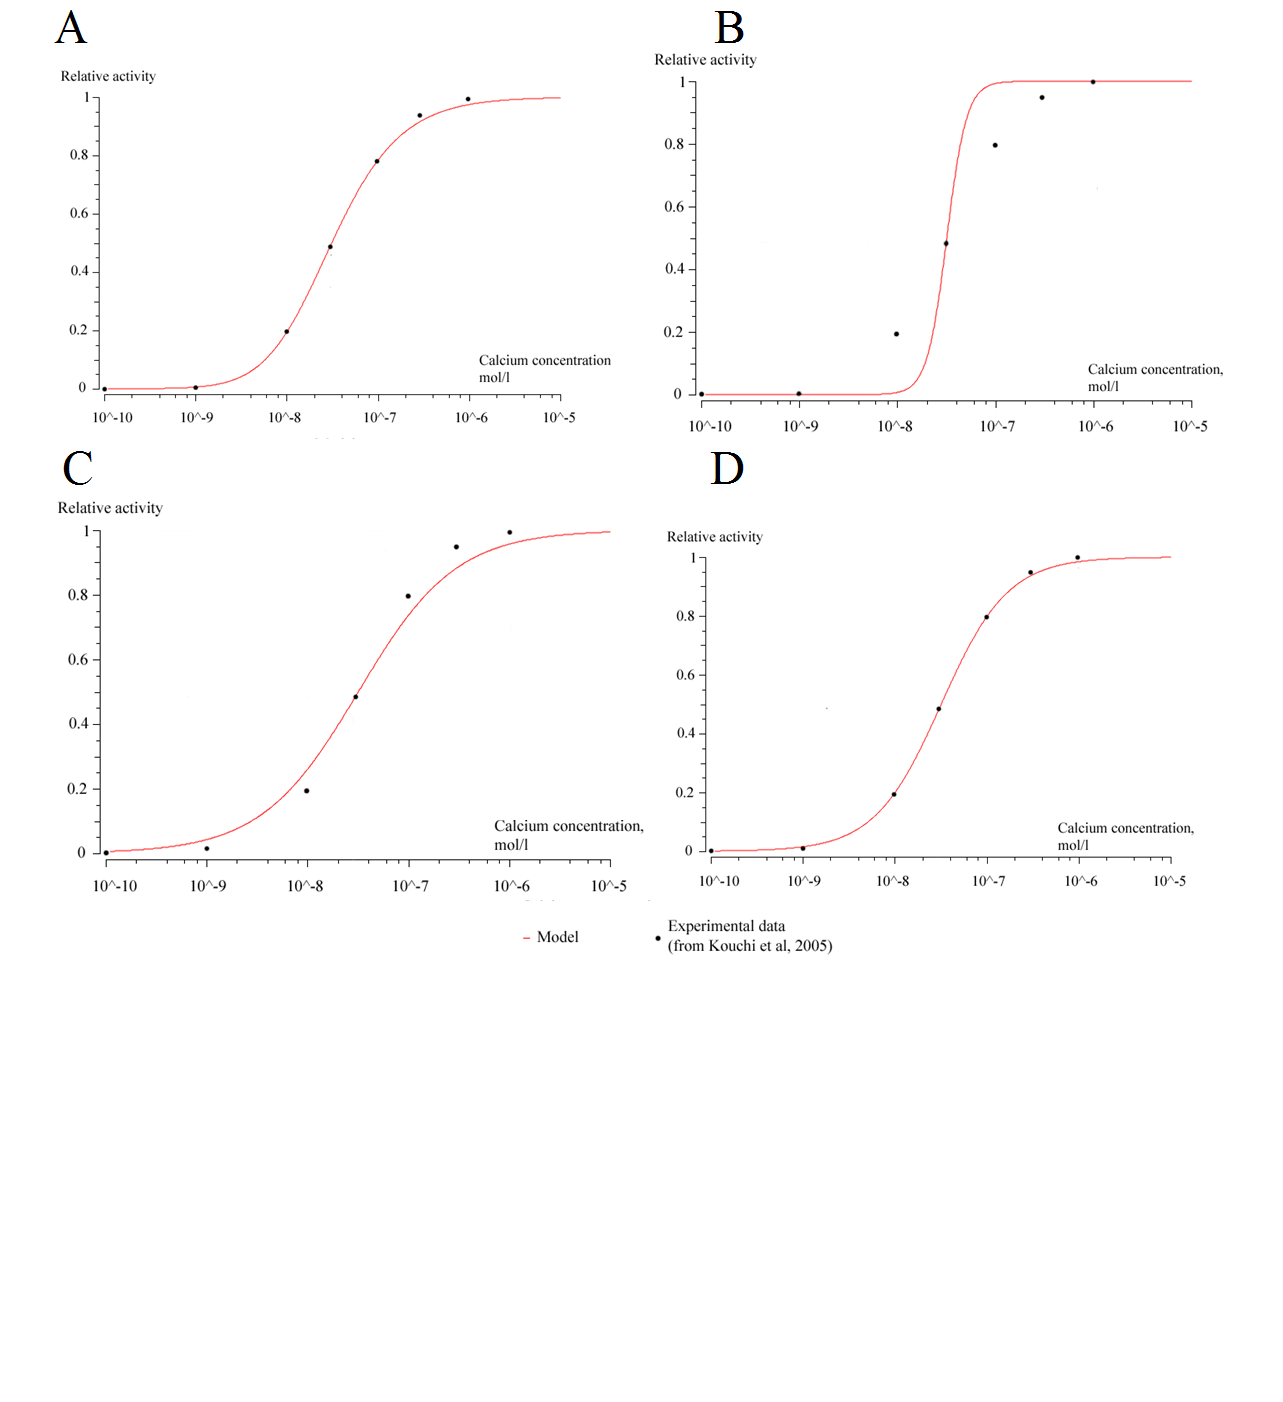 Validation of the models. (A) Validation of our calcium-binding model with experimental data from [9]. (B) Comparison of Hill equation for n=4.3 with experimental data from [9]. (C) Comparison of Hill equation for n=0.9 with experimental data from [9]. (D) Comparison of Hill equation for n=1.1 with experimental data from [9].